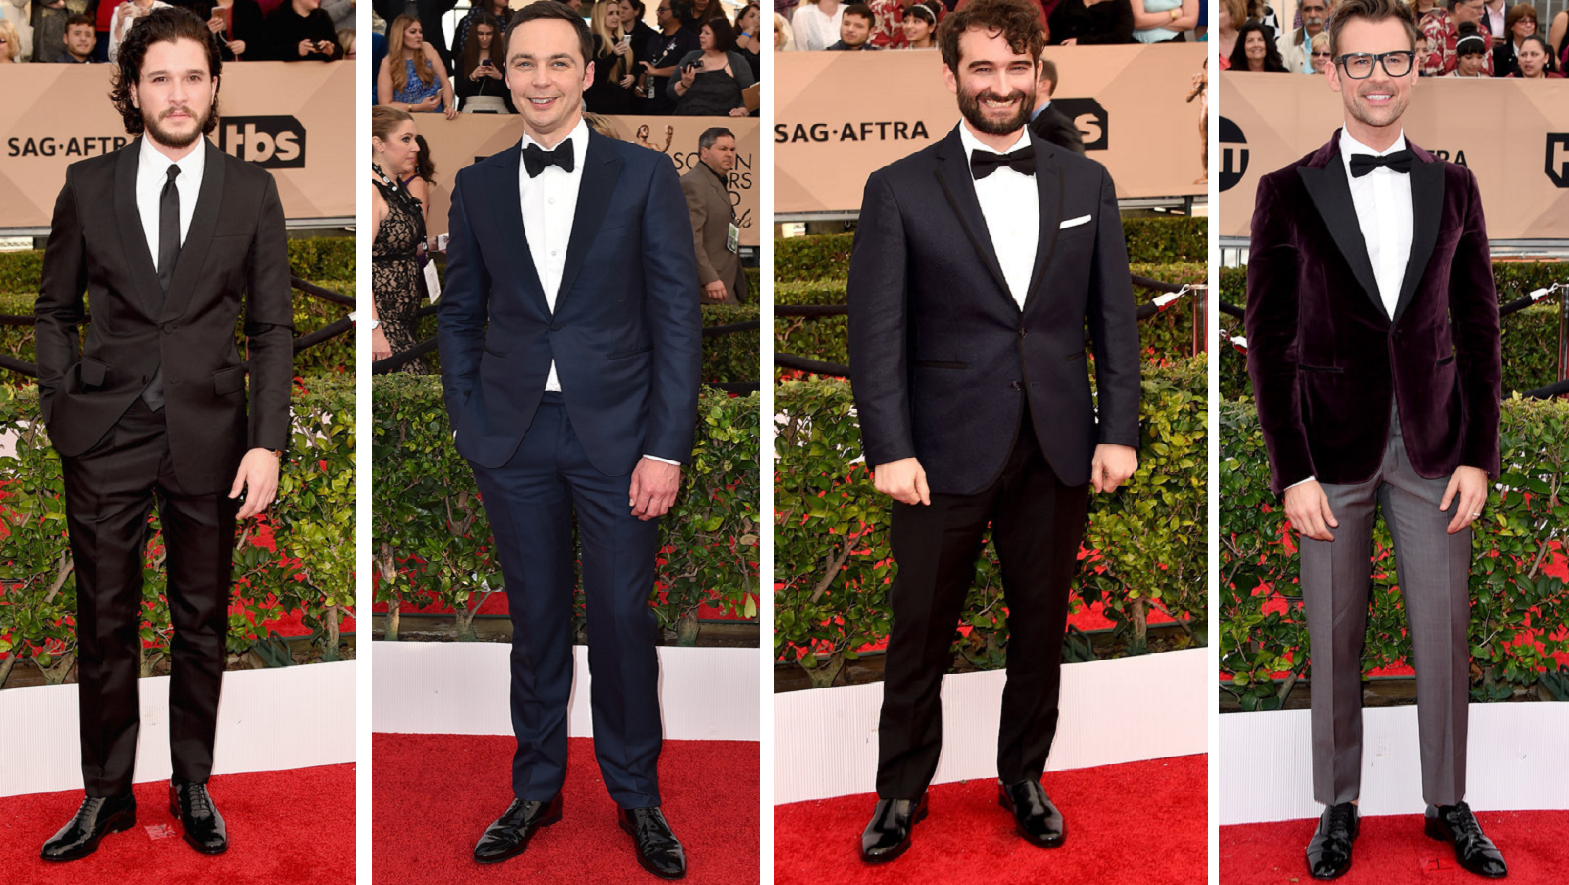 kit-harrington-jim-parsons-jay-duplass-brad-goreski